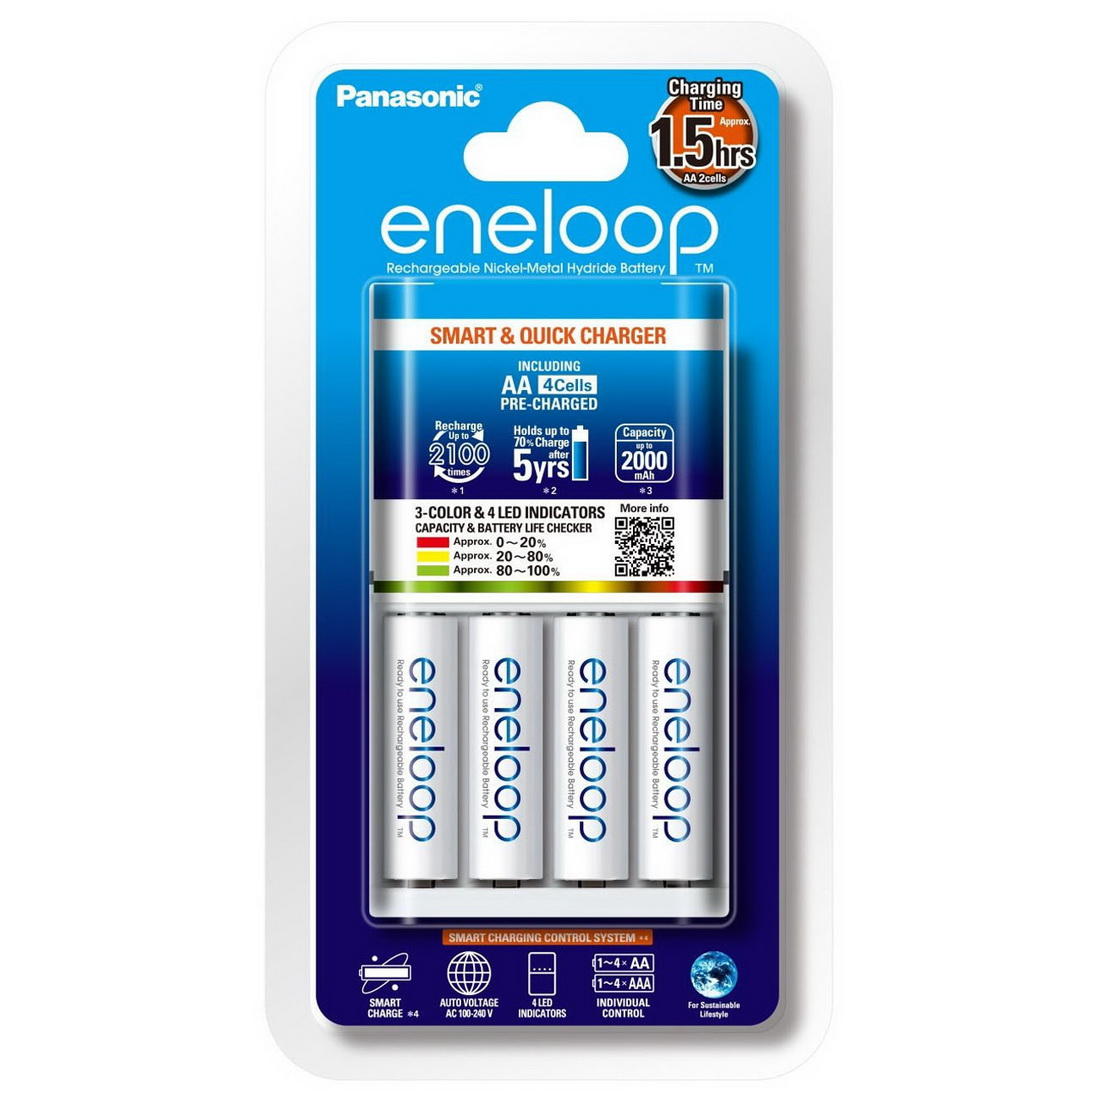 Eneloop 2000mAh 1.5hrs Charging Smart & Quick AA Rechargeable Battery Charger